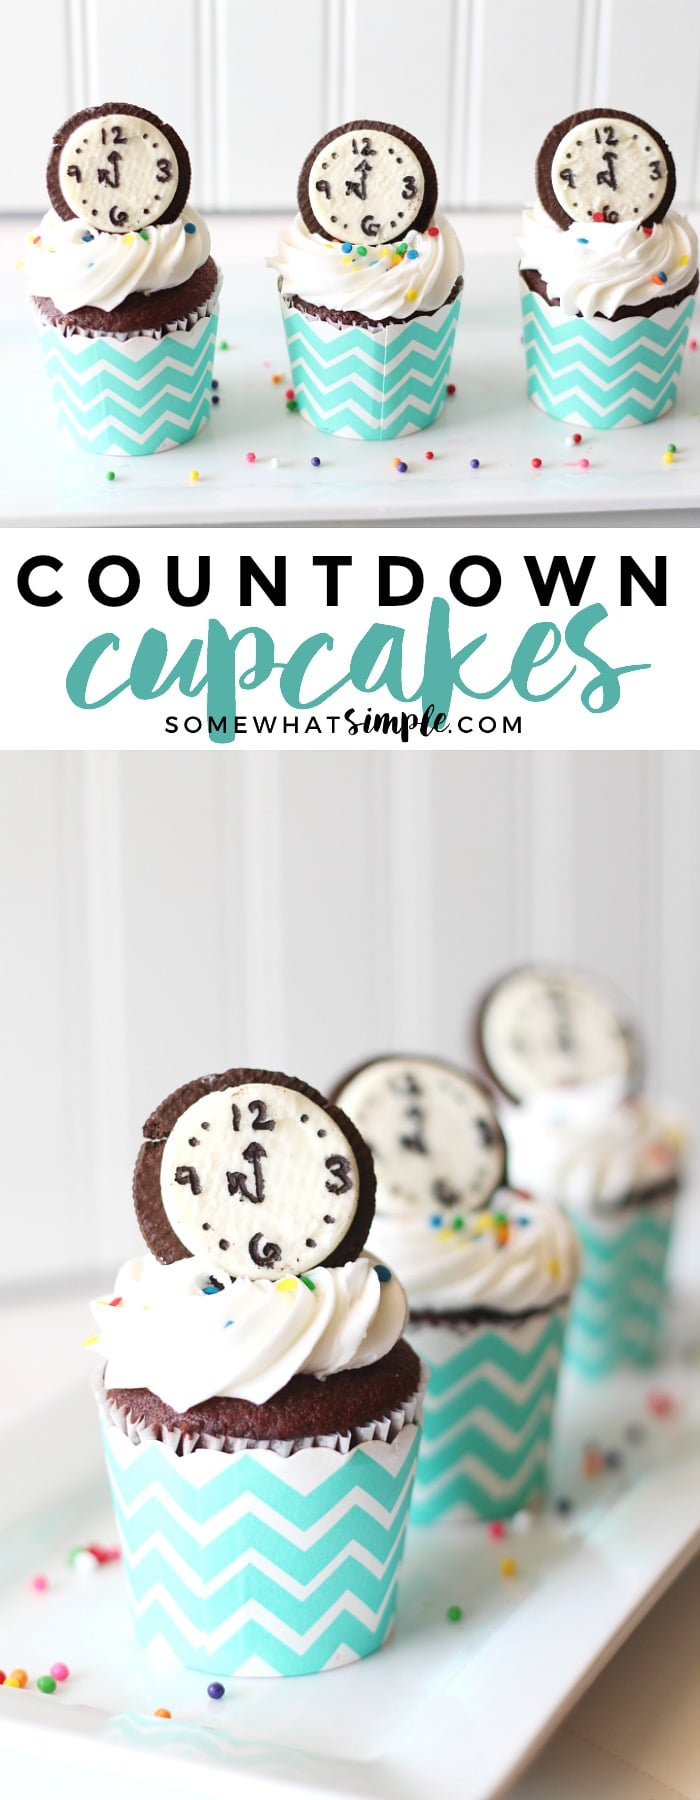 Festive New Years Cupcakes your party guests will love - Countdown Cupcakes!